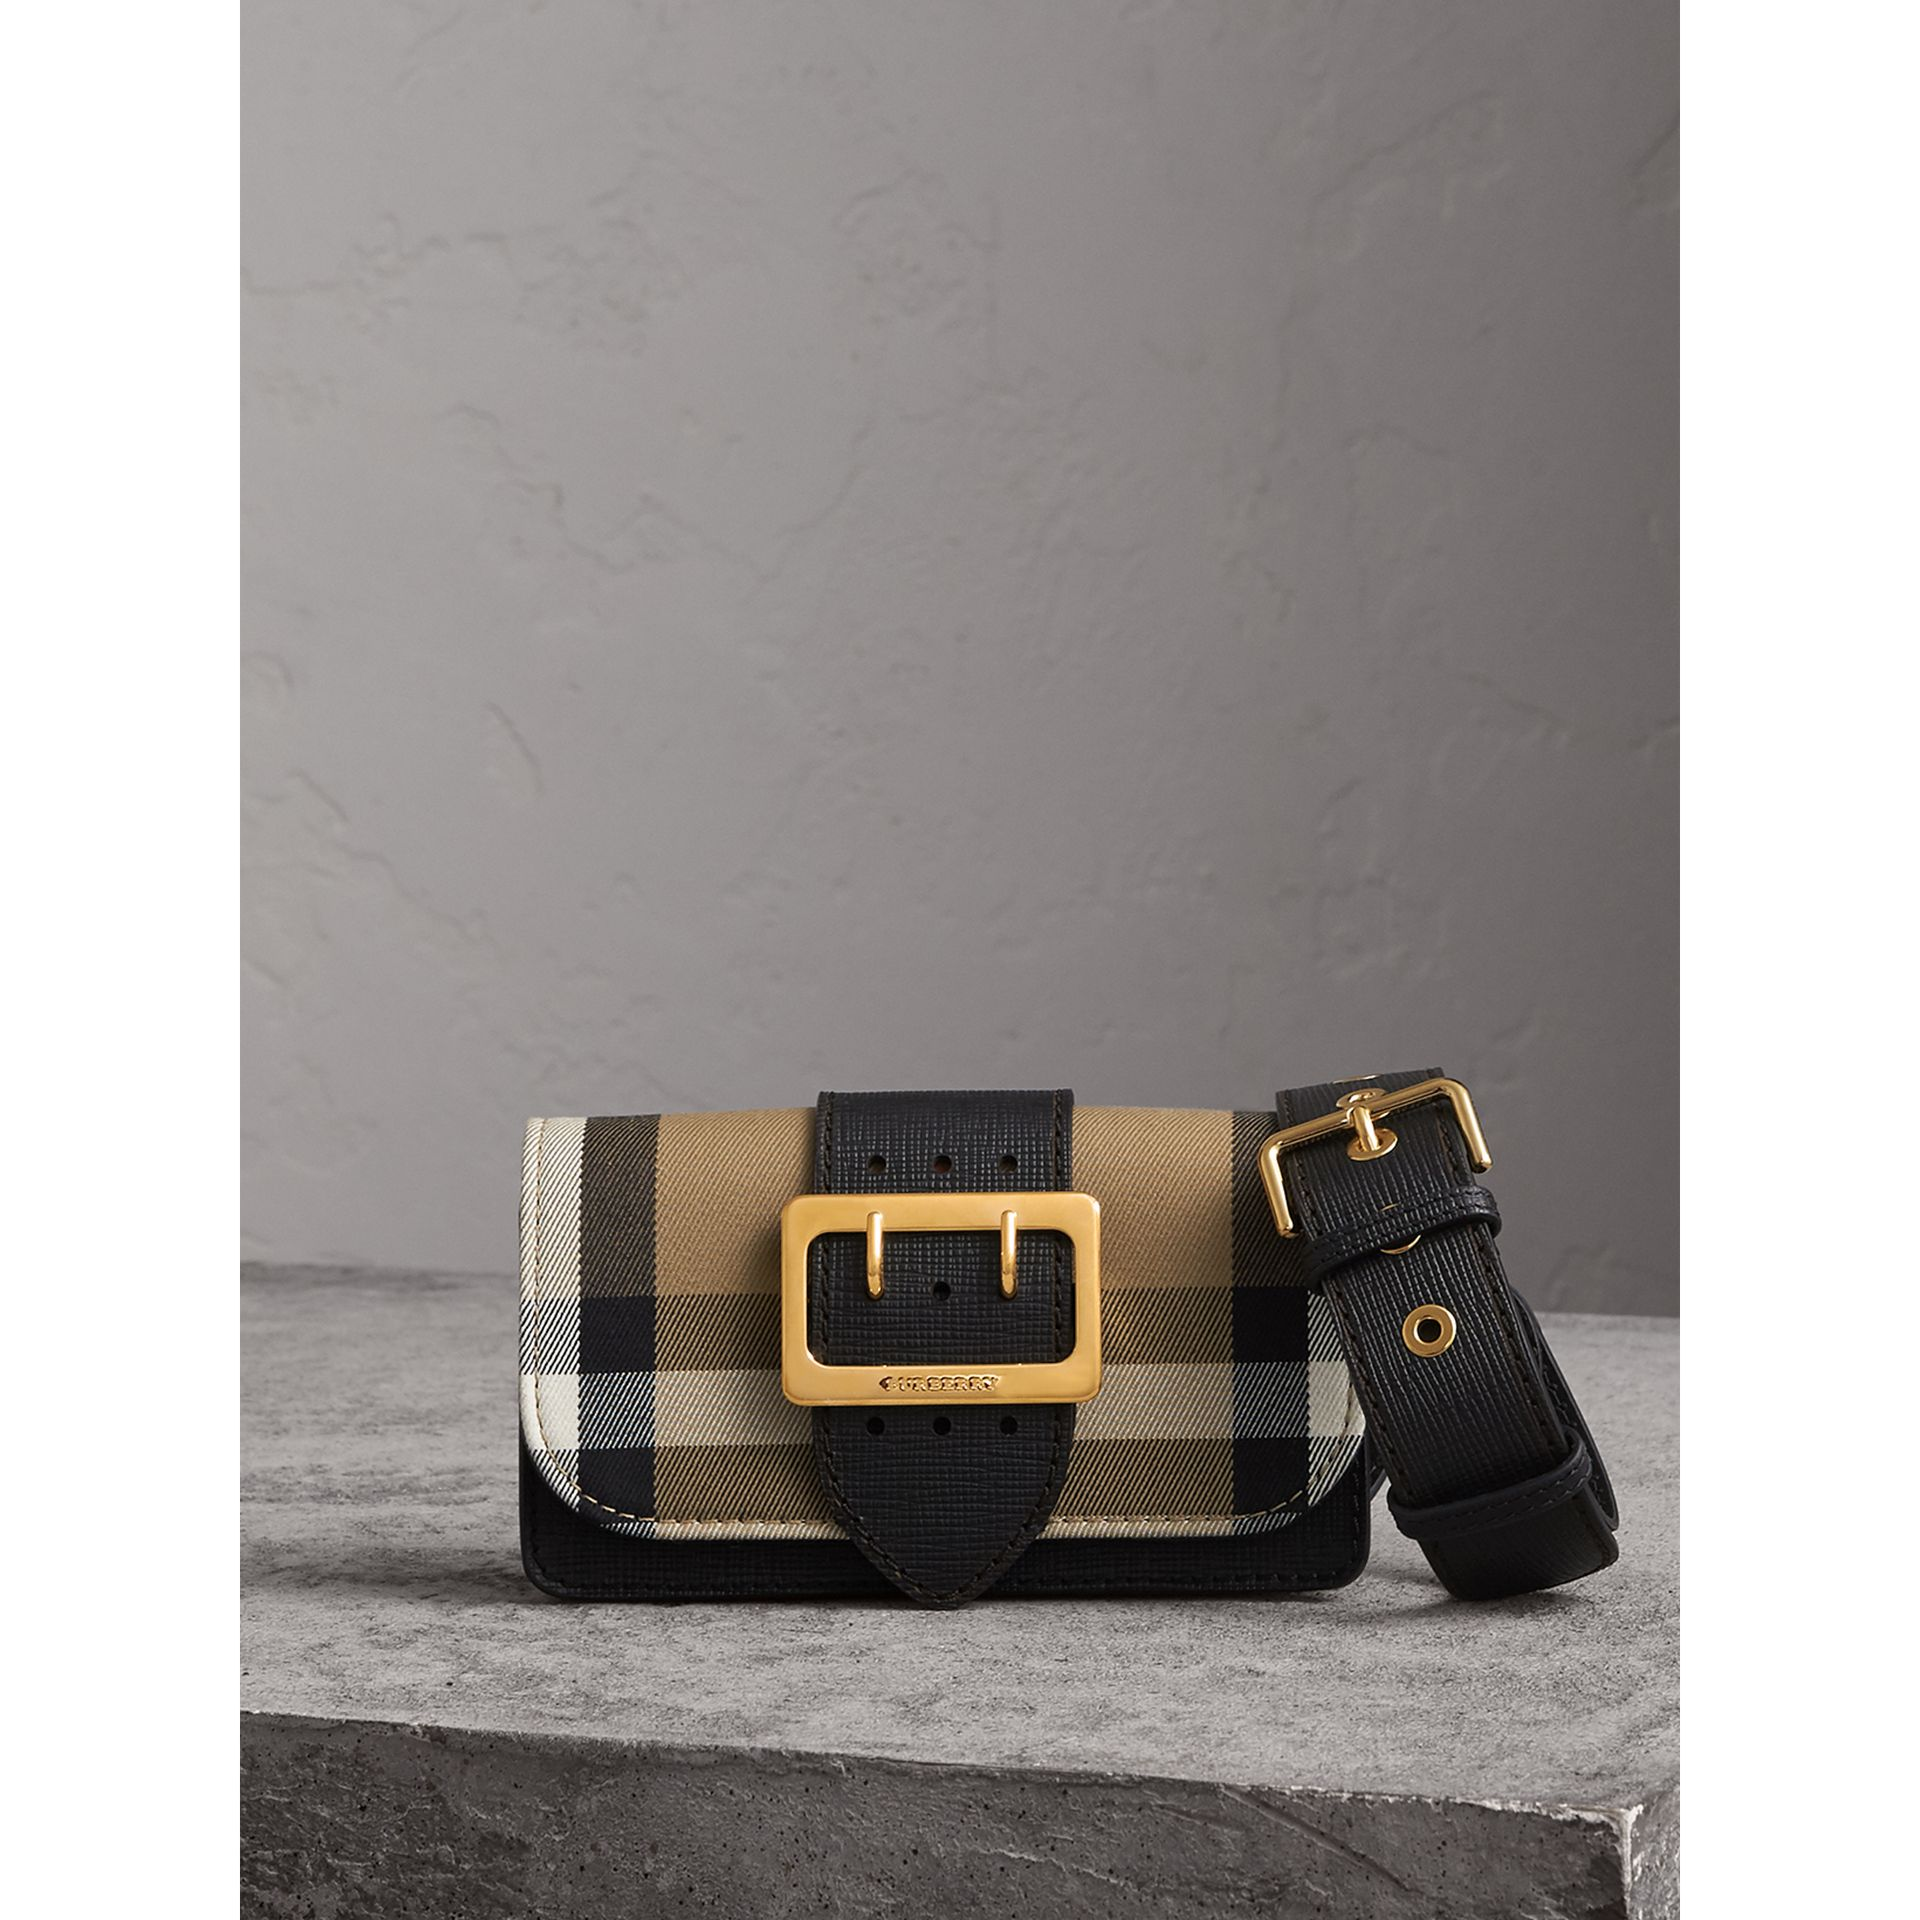 Petit sac The Buckle en coton House check et cuir (Noir) - Femme | Burberry - photo de la galerie 1